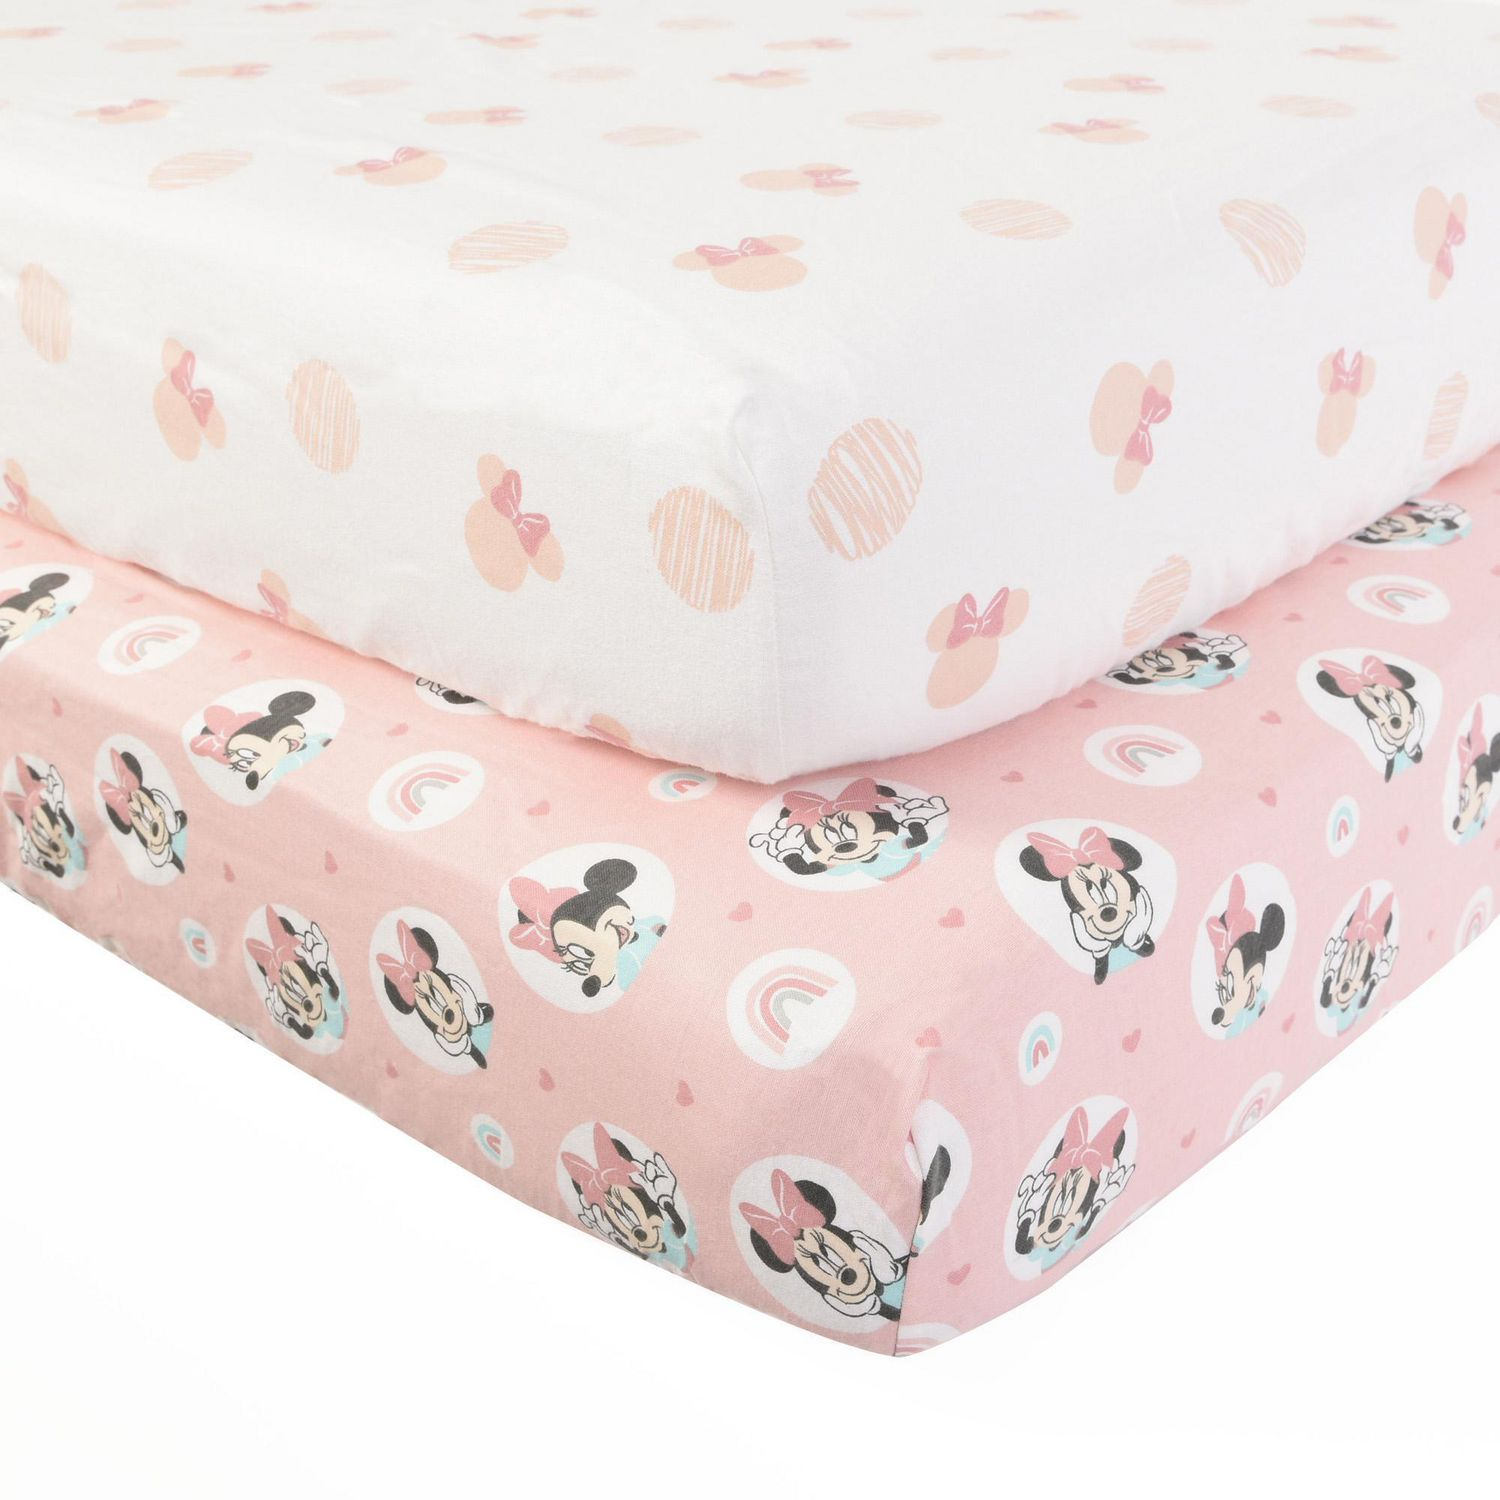 2-Pack Cotton Flannel Fitted Crib Sheets Going Dotty Disney Minnie Mouse